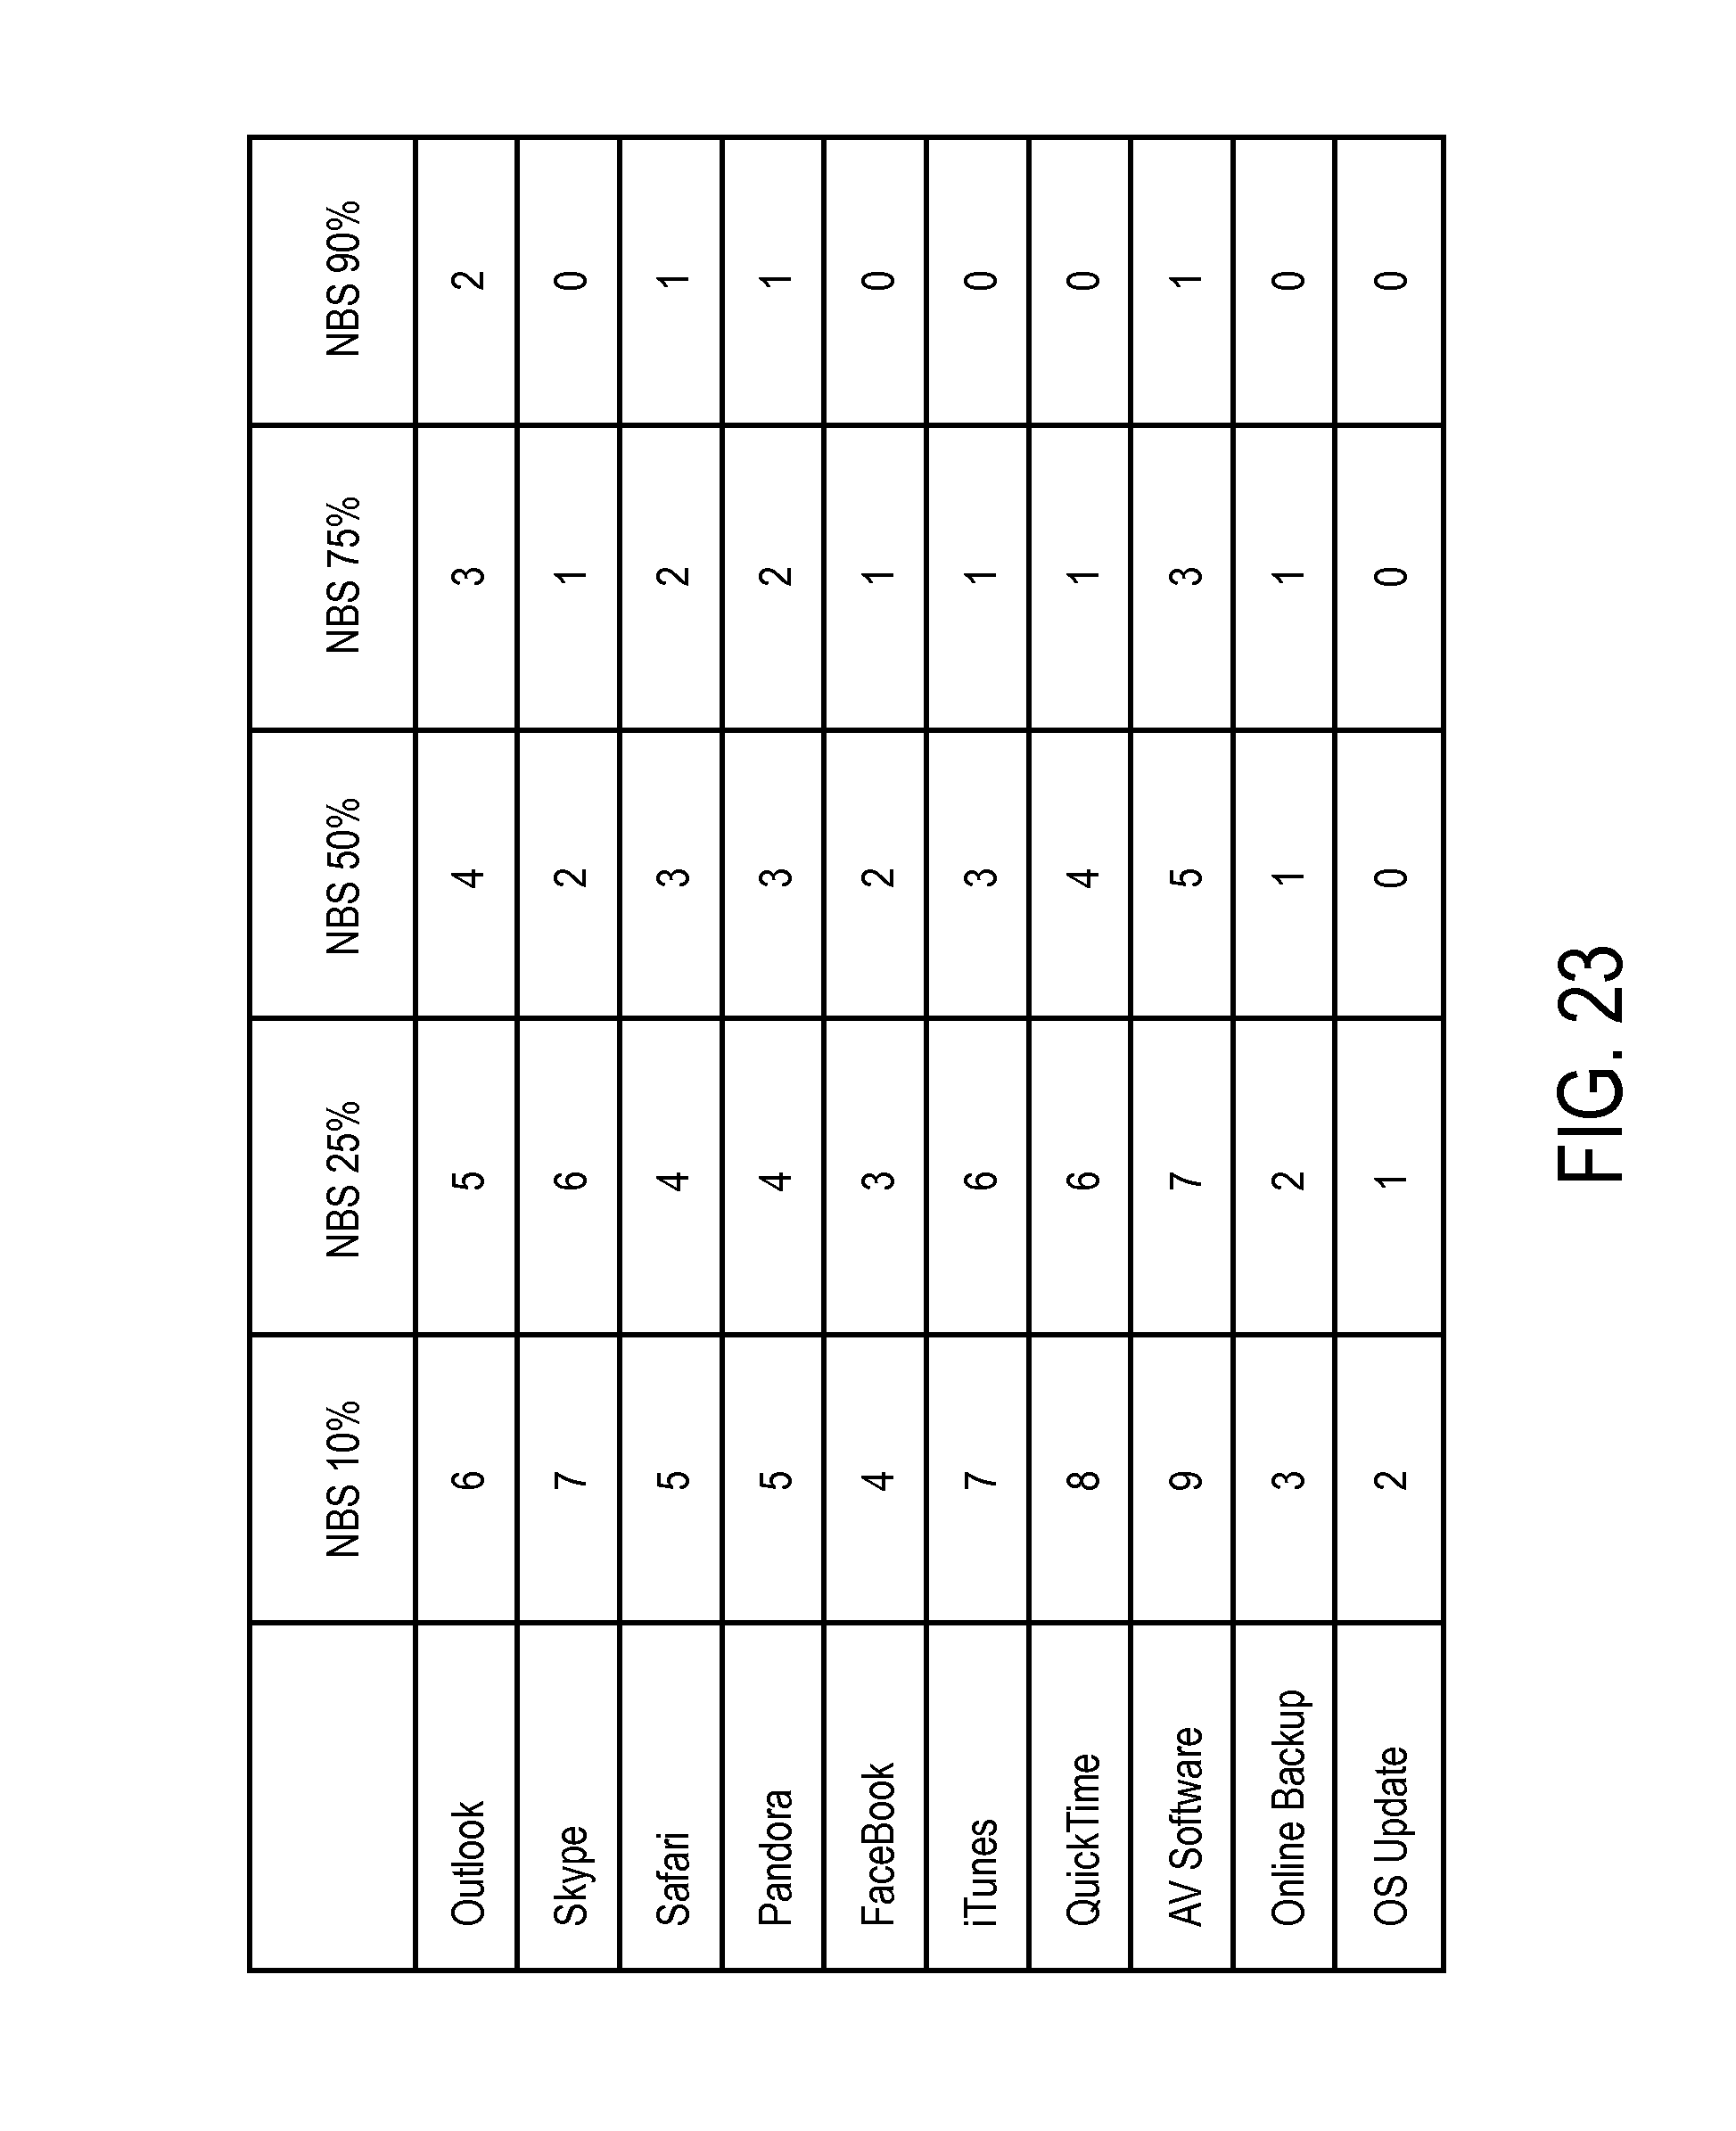 Patent Us 9154428 B2 Diagram Moreover Dip Switch Settings In Addition Cat 5 Crossover Cable 0 Petitions